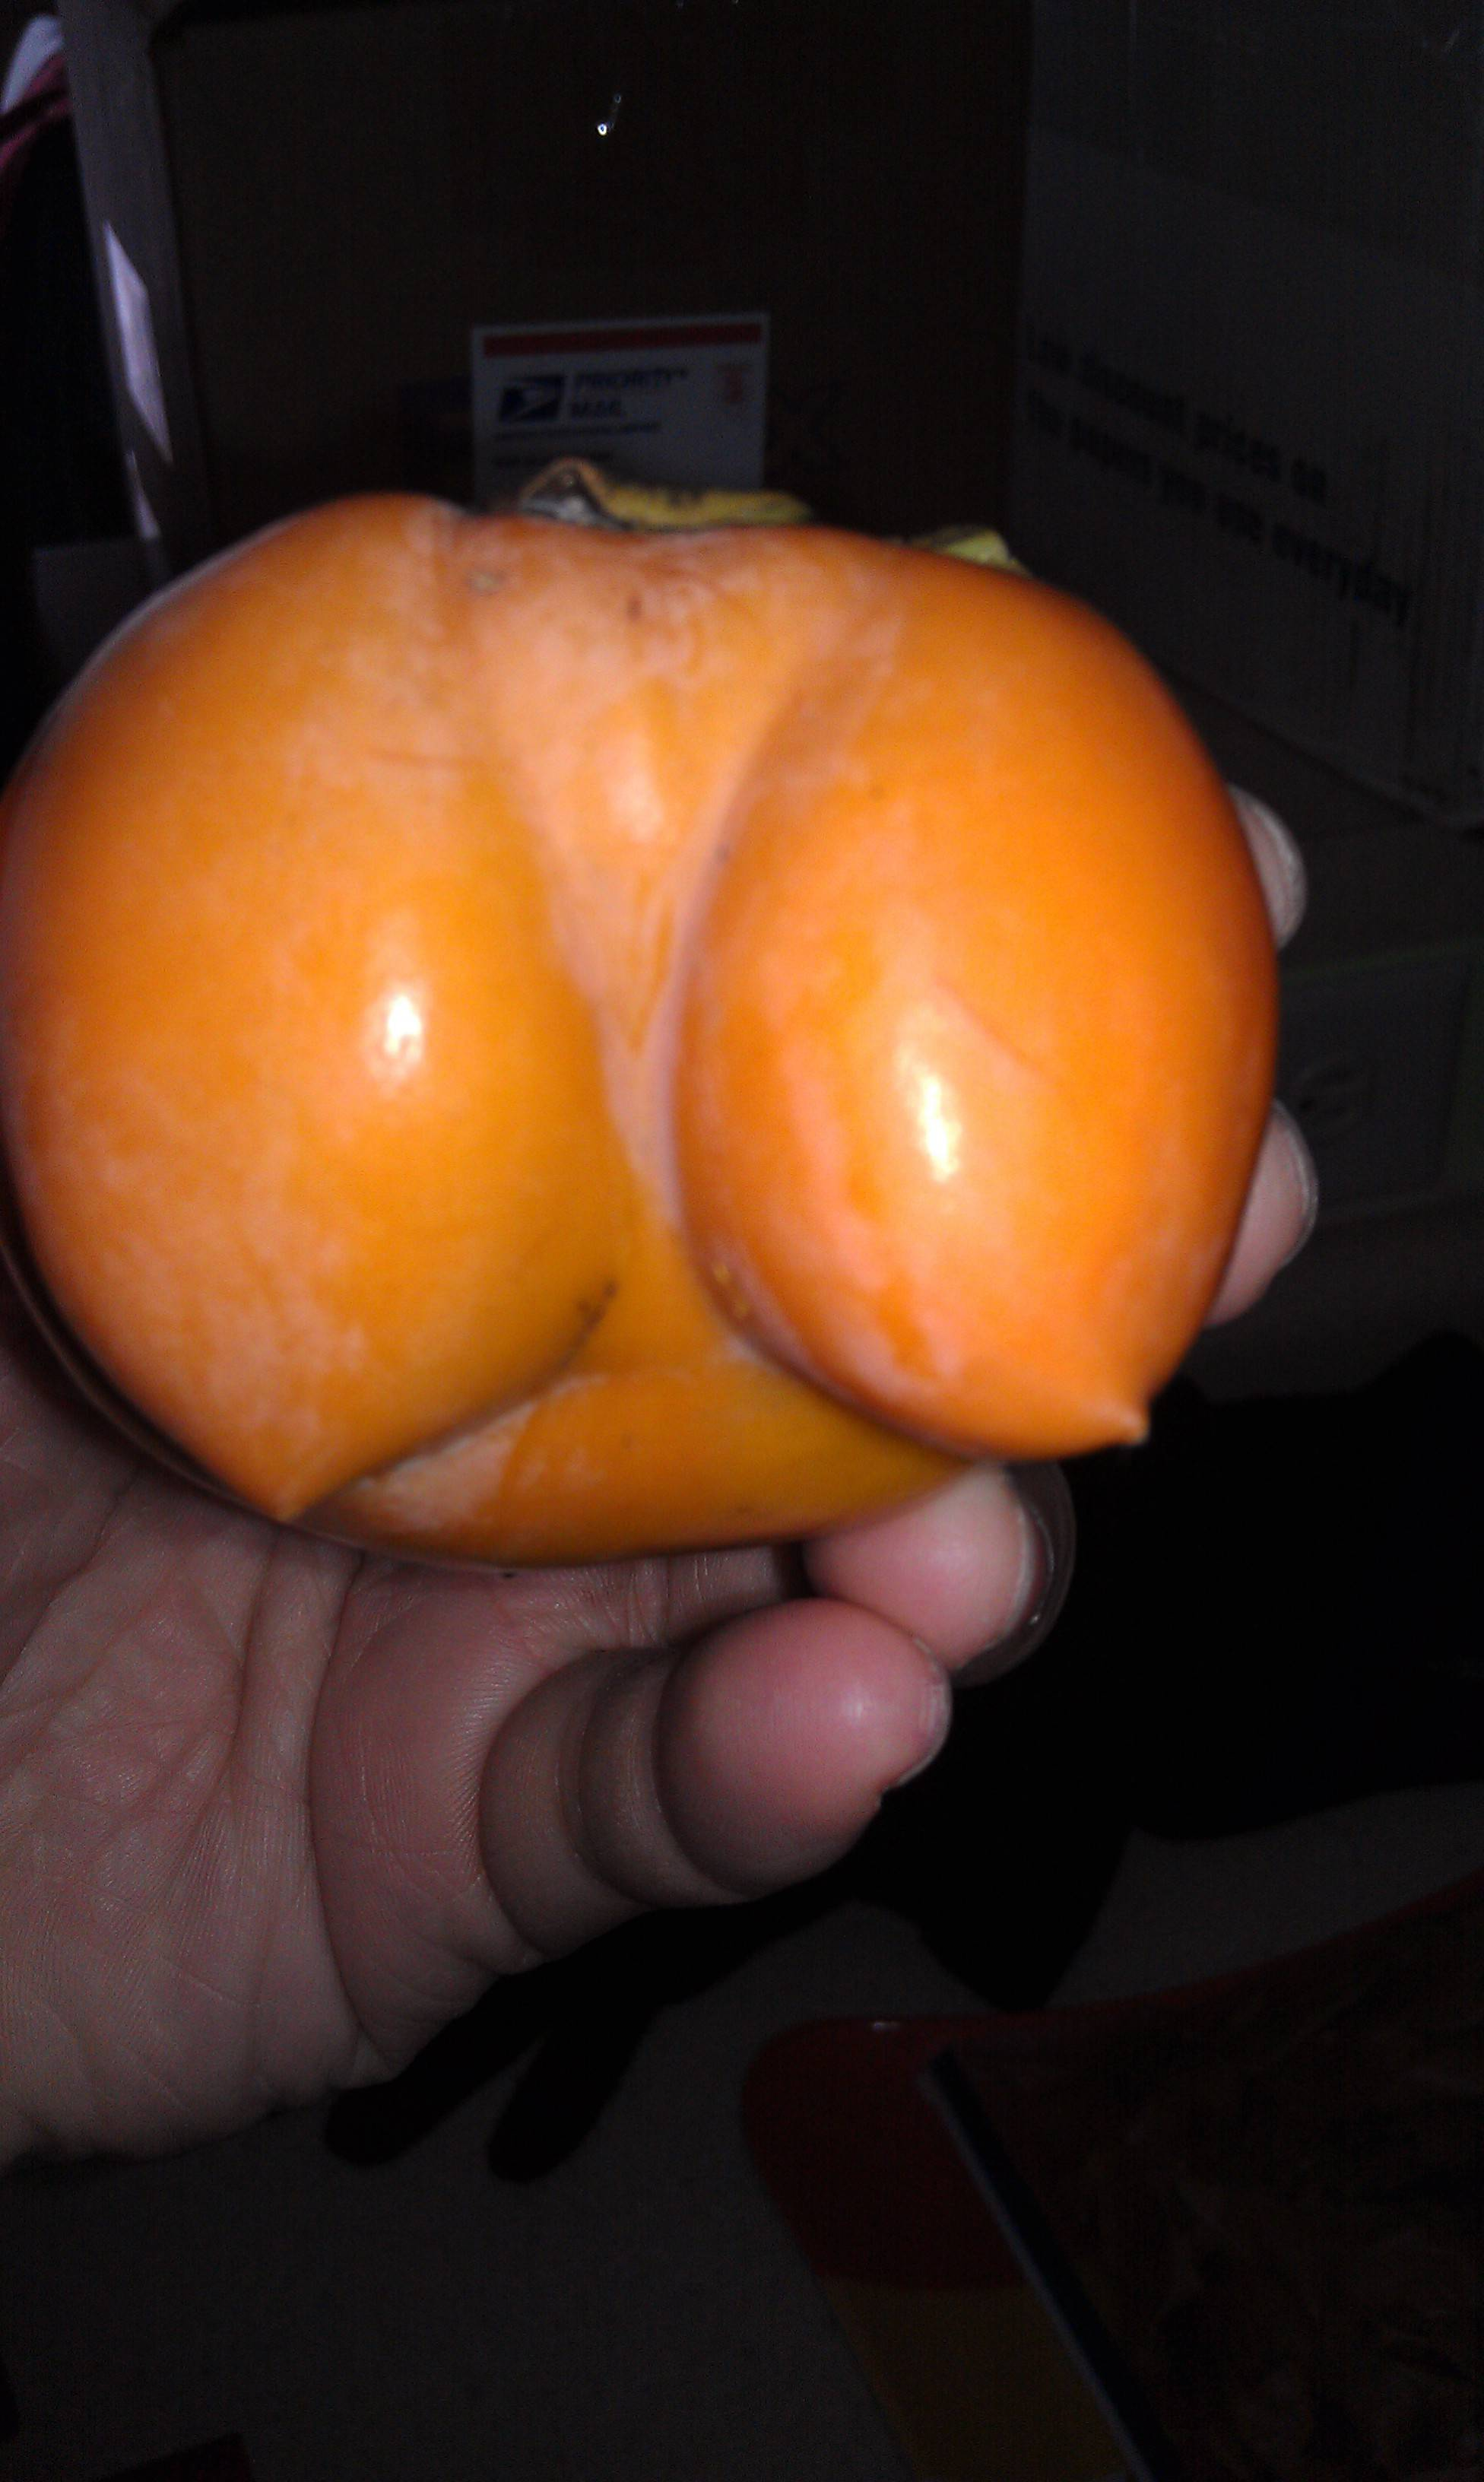 persimmon's boobs